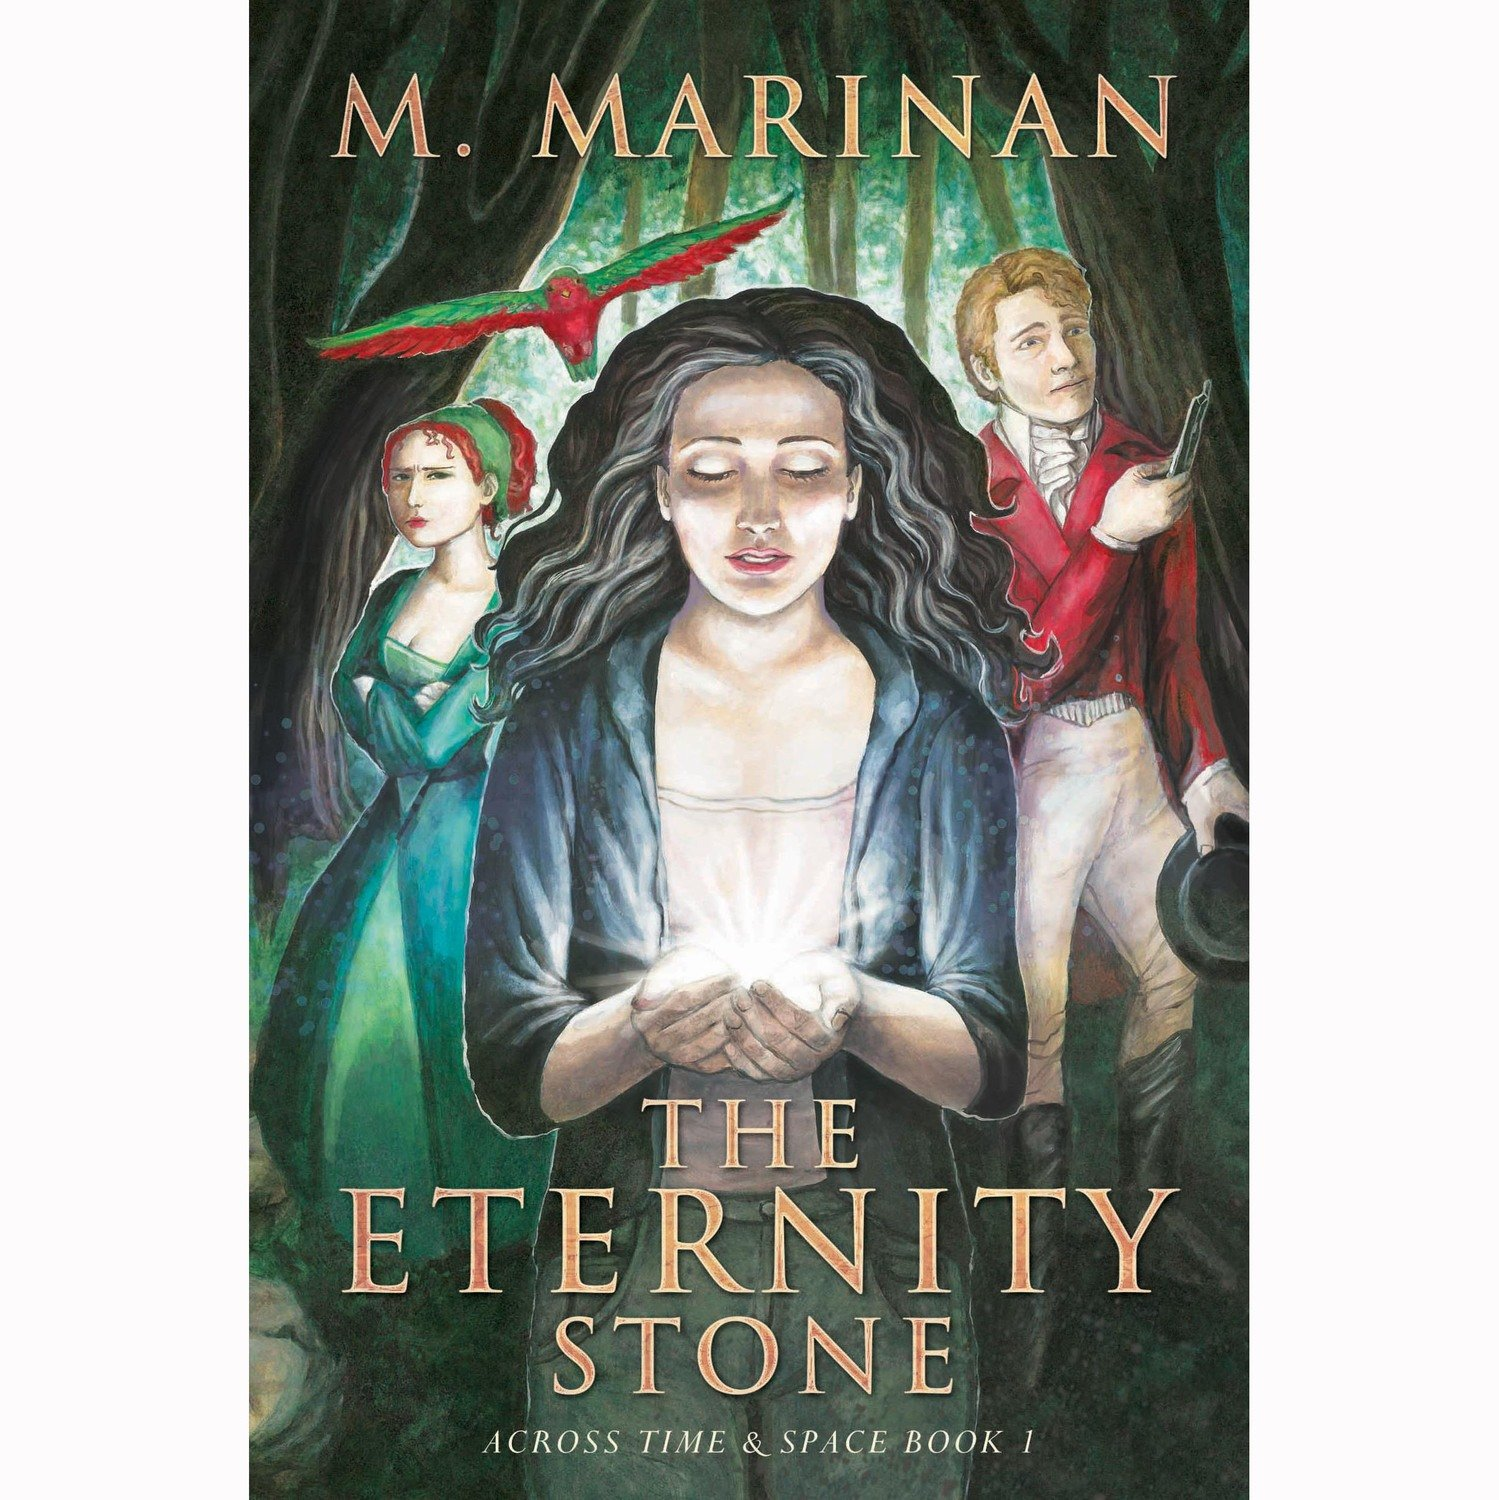 The Eternity Stone